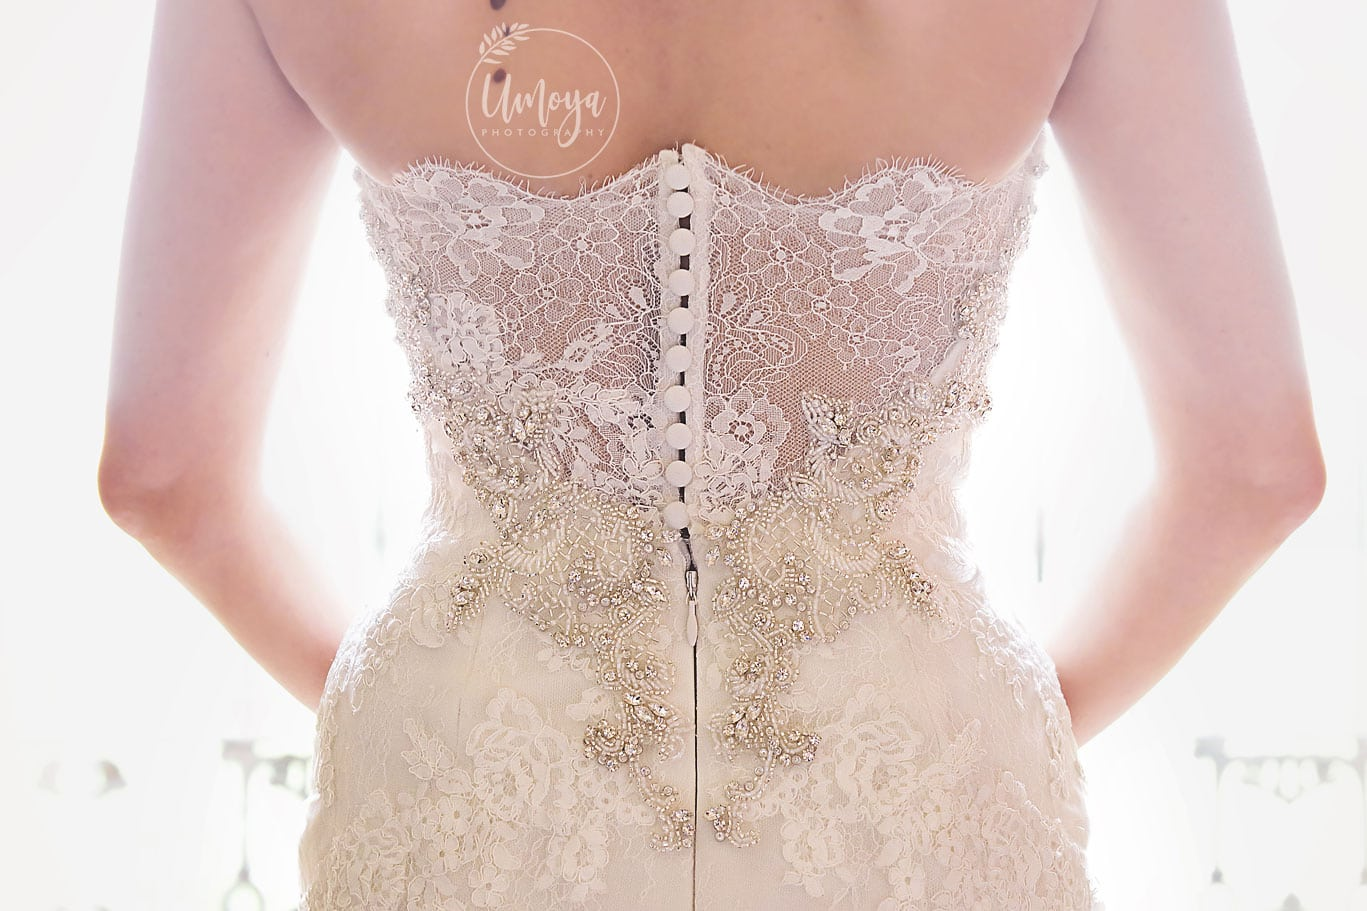 stunning back of dress detail by Kelly Rabie, Sussex wedding photographer